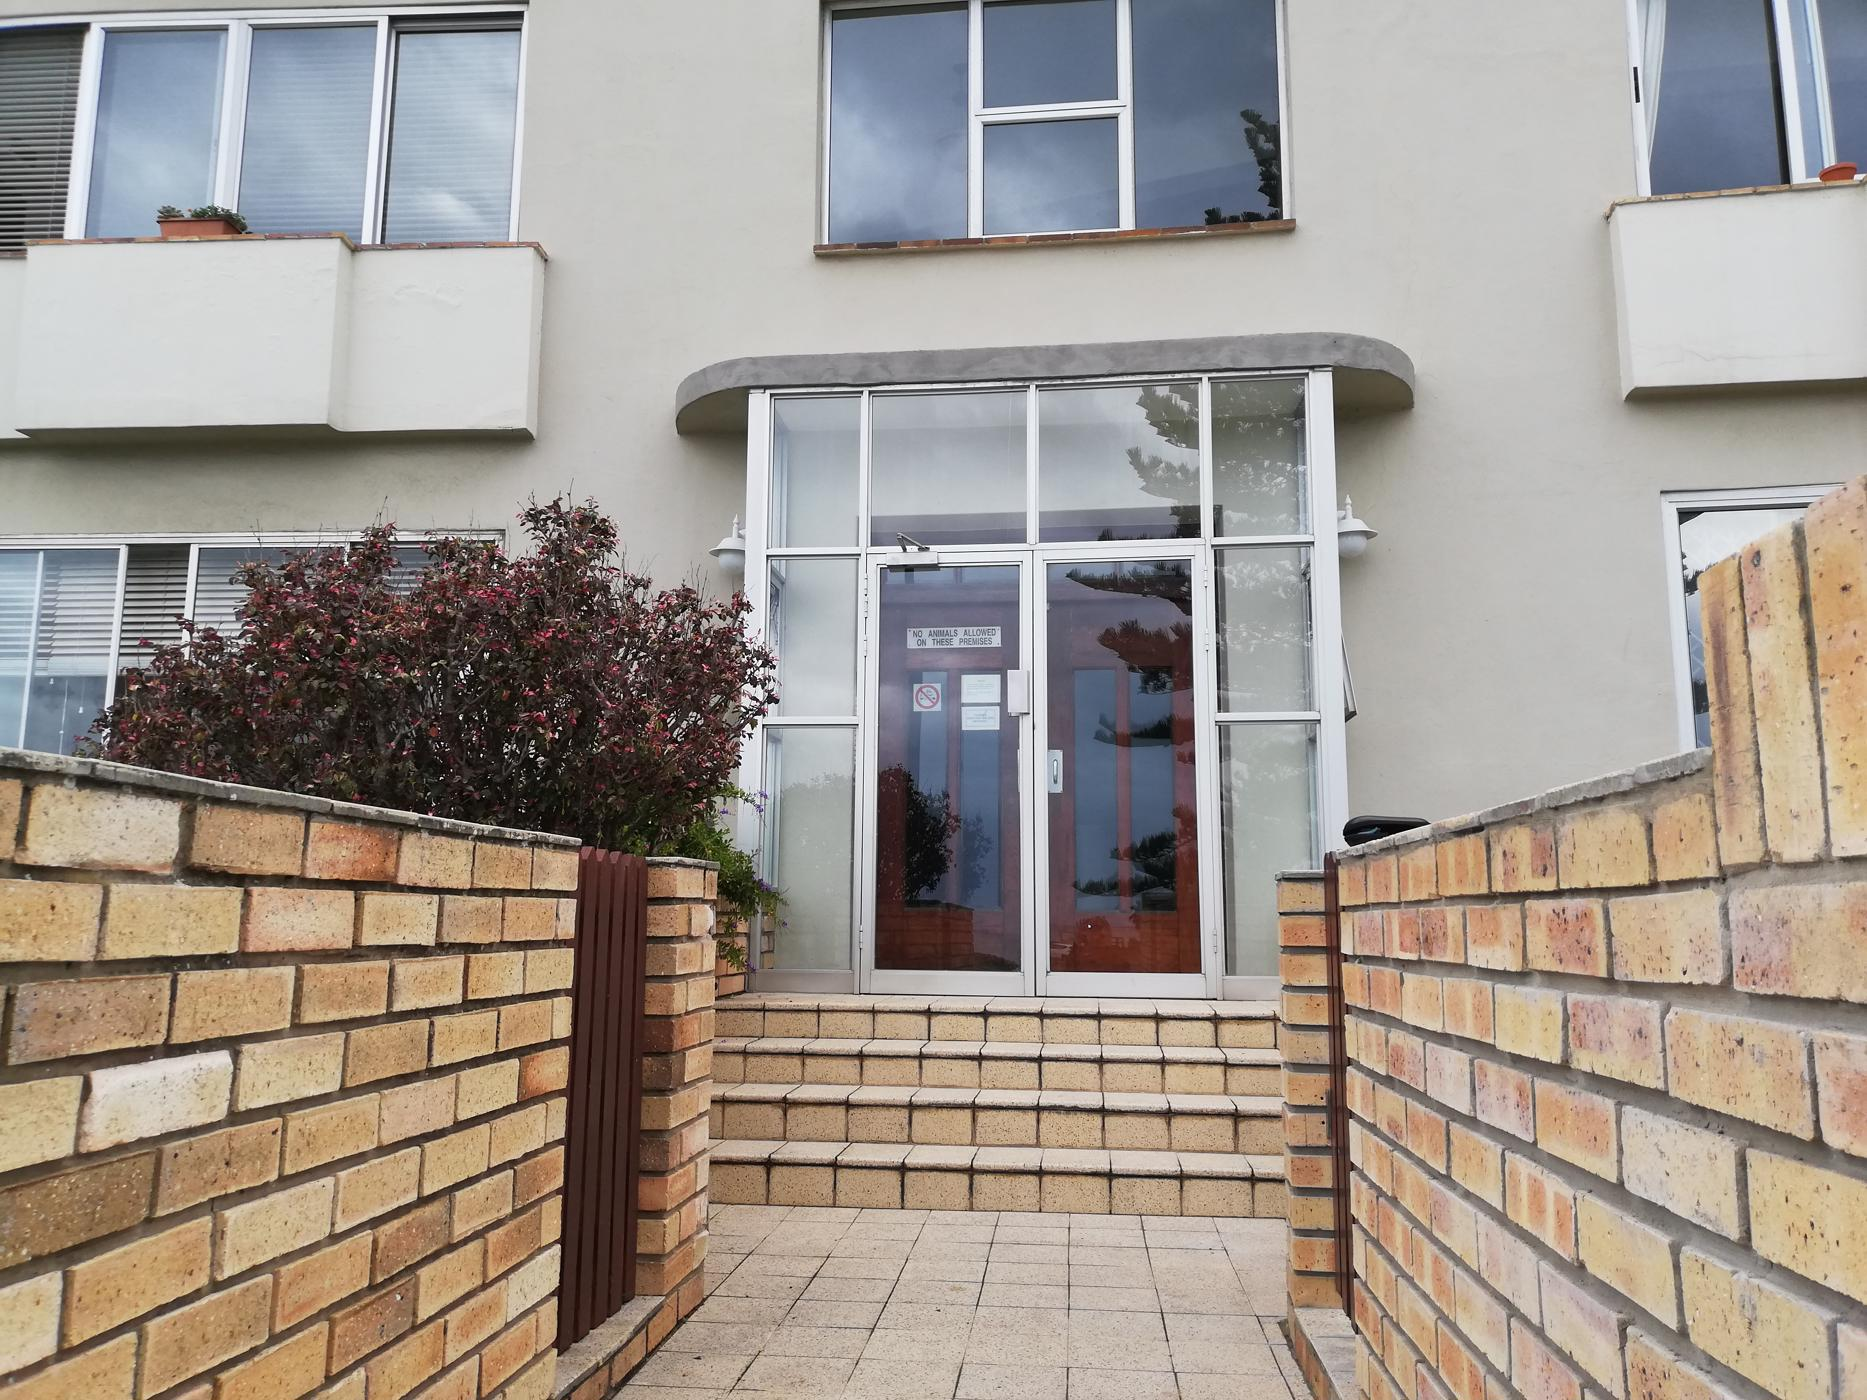 https://listing.pamgolding.co.za/images/properties/201909/1510325/H/1510325_H_41.jpg